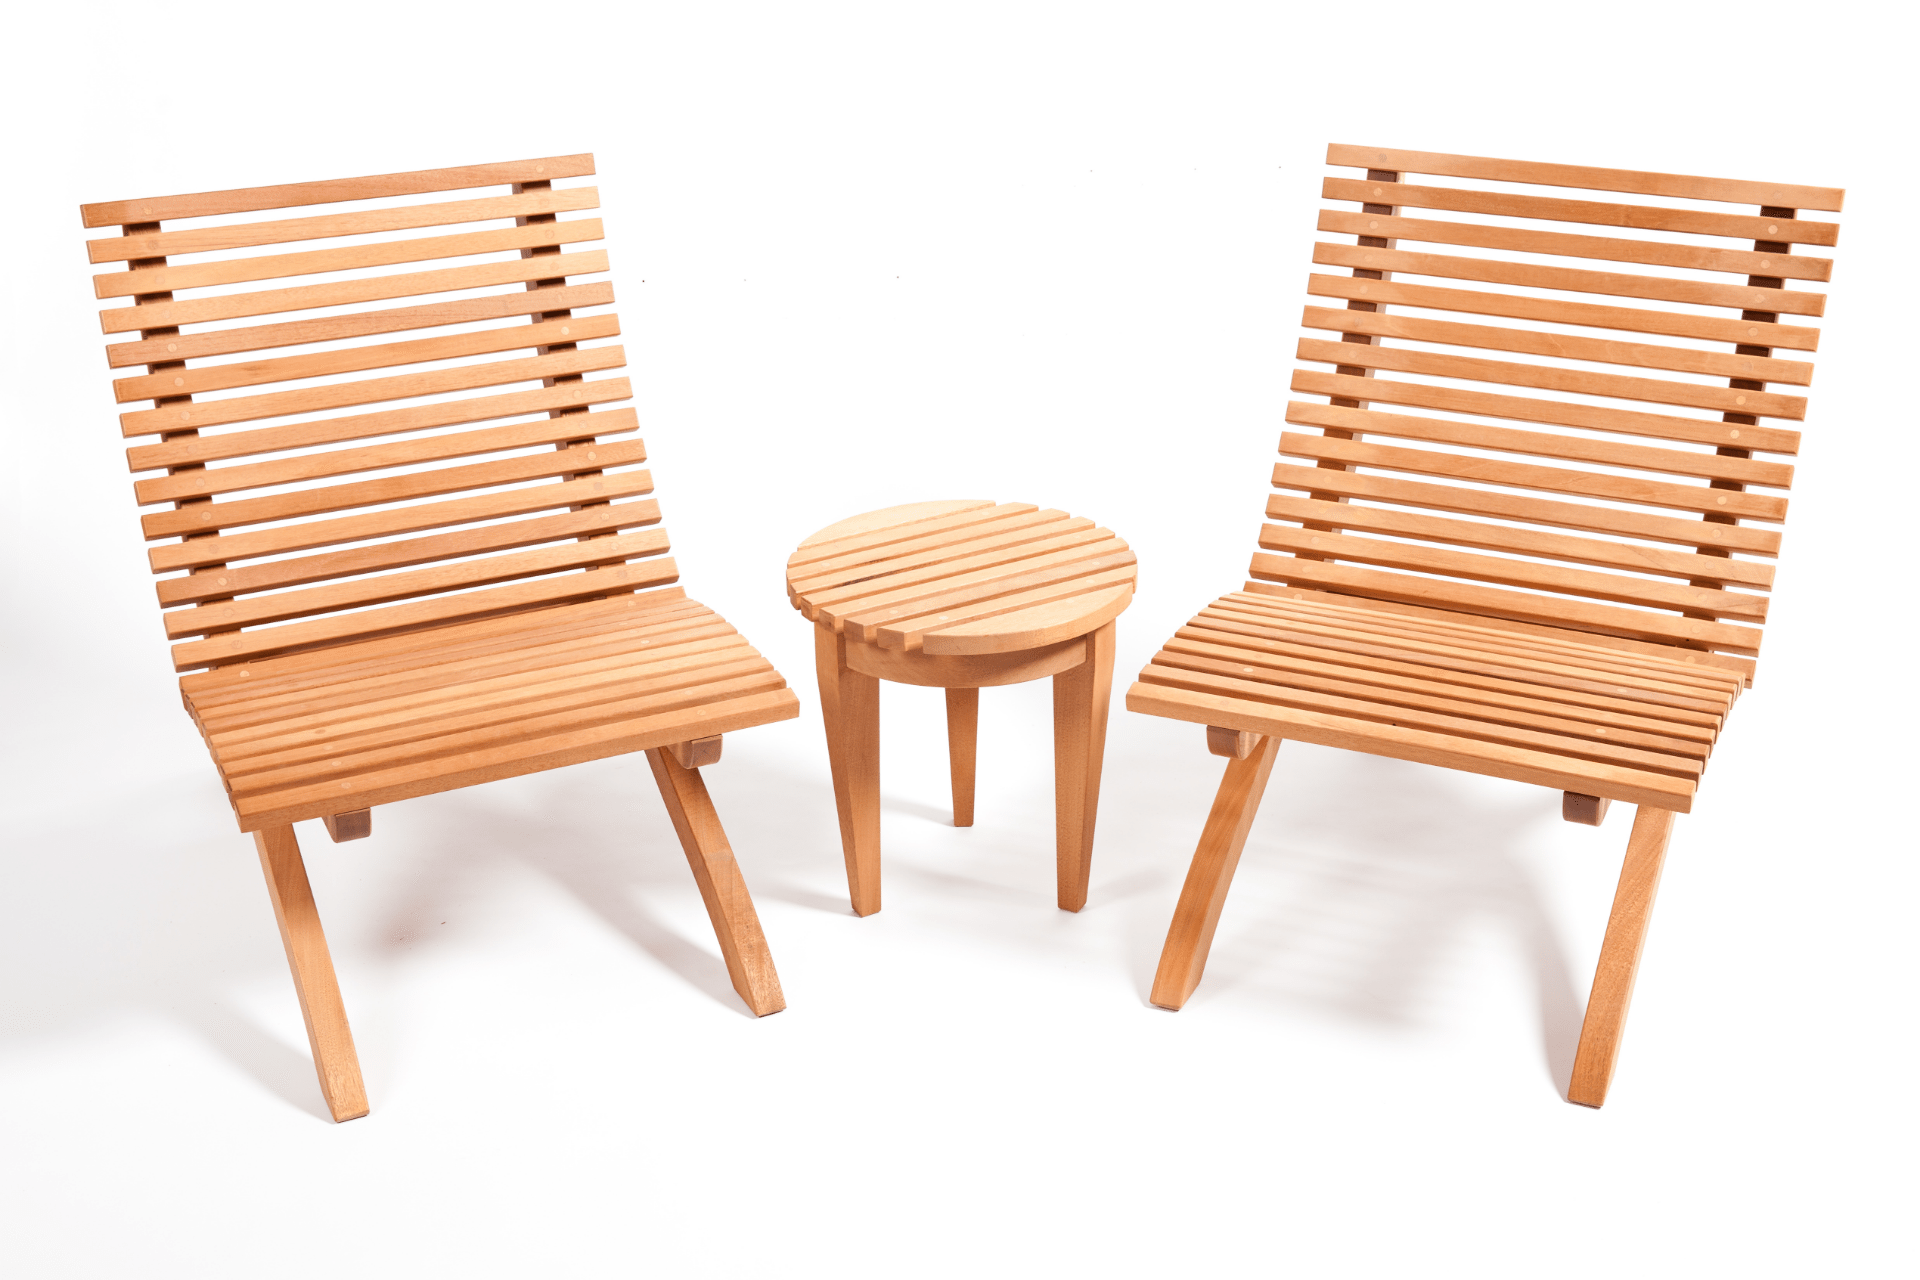 Outdoor Garden Set | Handmade Wood Furniture | STUDIORossi